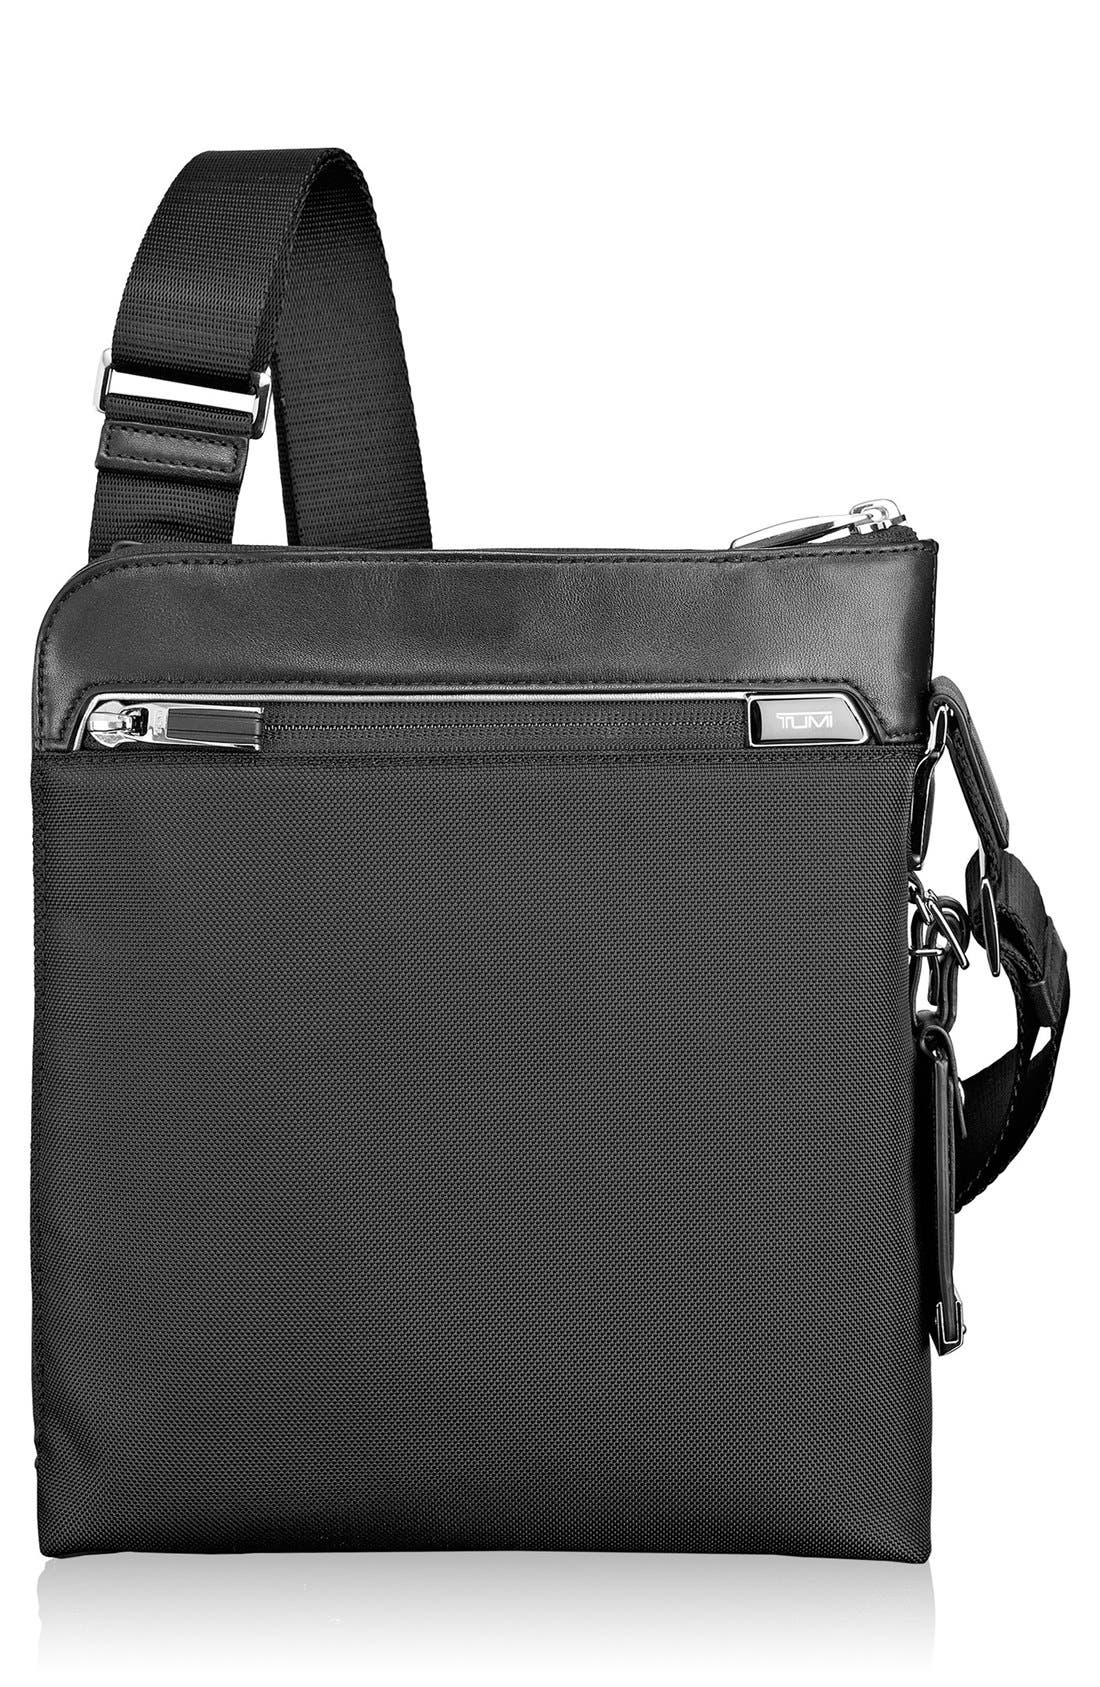 Tumi Arrivé - Owen Crossbody Bag